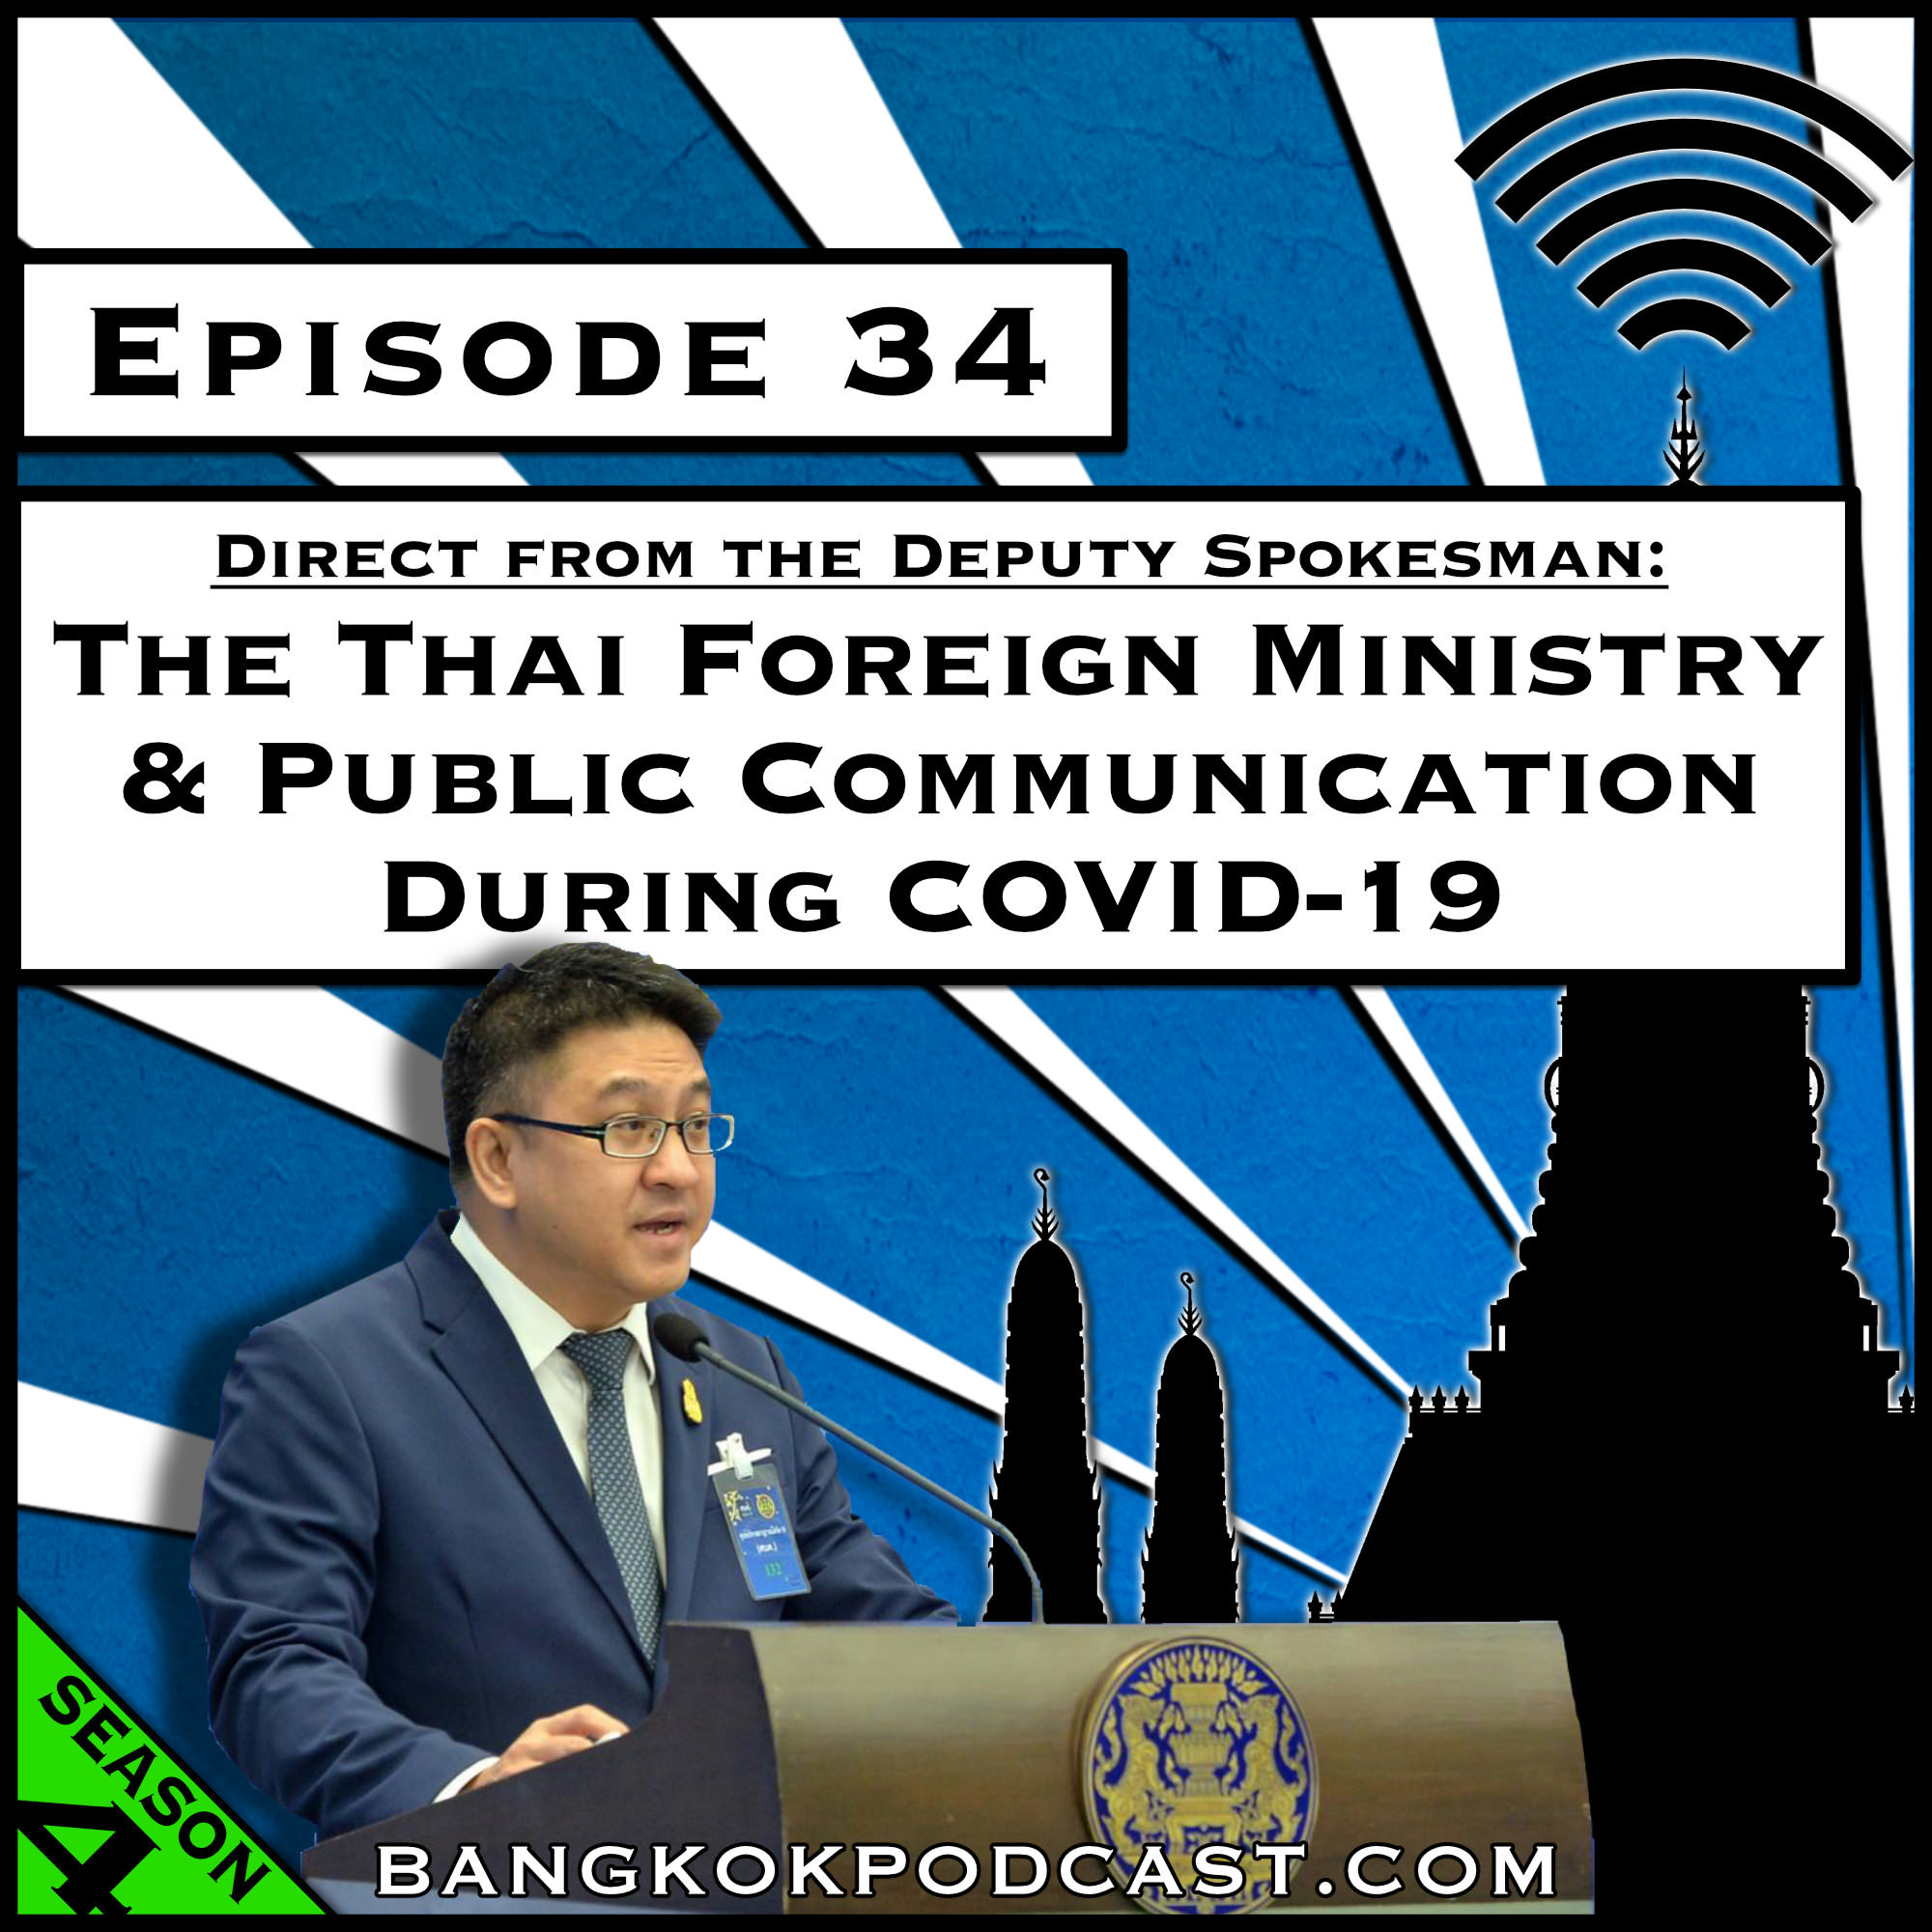 The Thai Foreign Ministry & Public Communication During COVID-19 [Season 4, Episode 34]